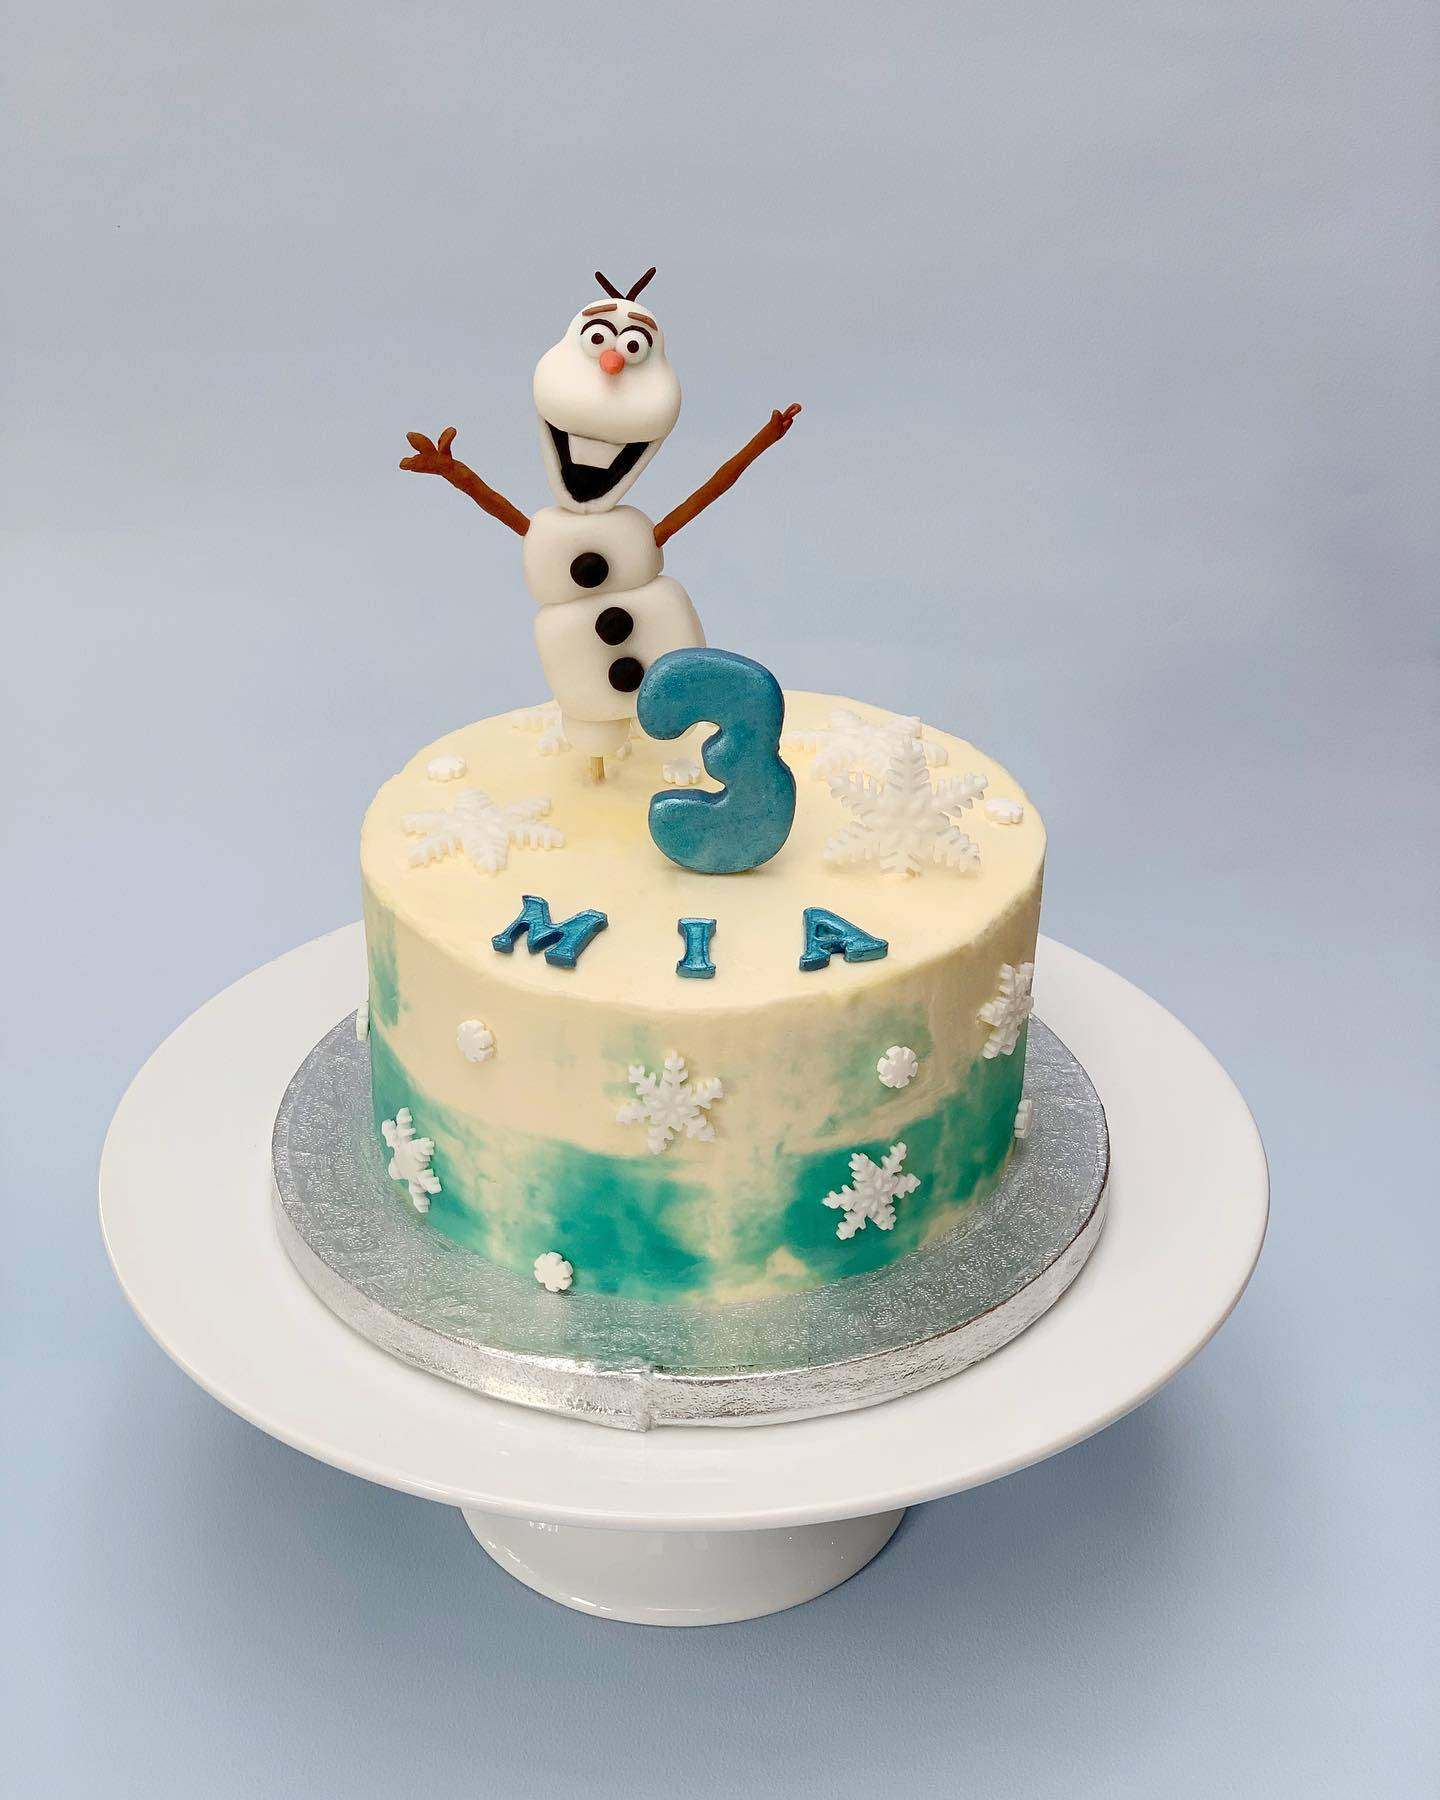 Olaf Birthday cake, Red Velvet and cream cheese buttercream